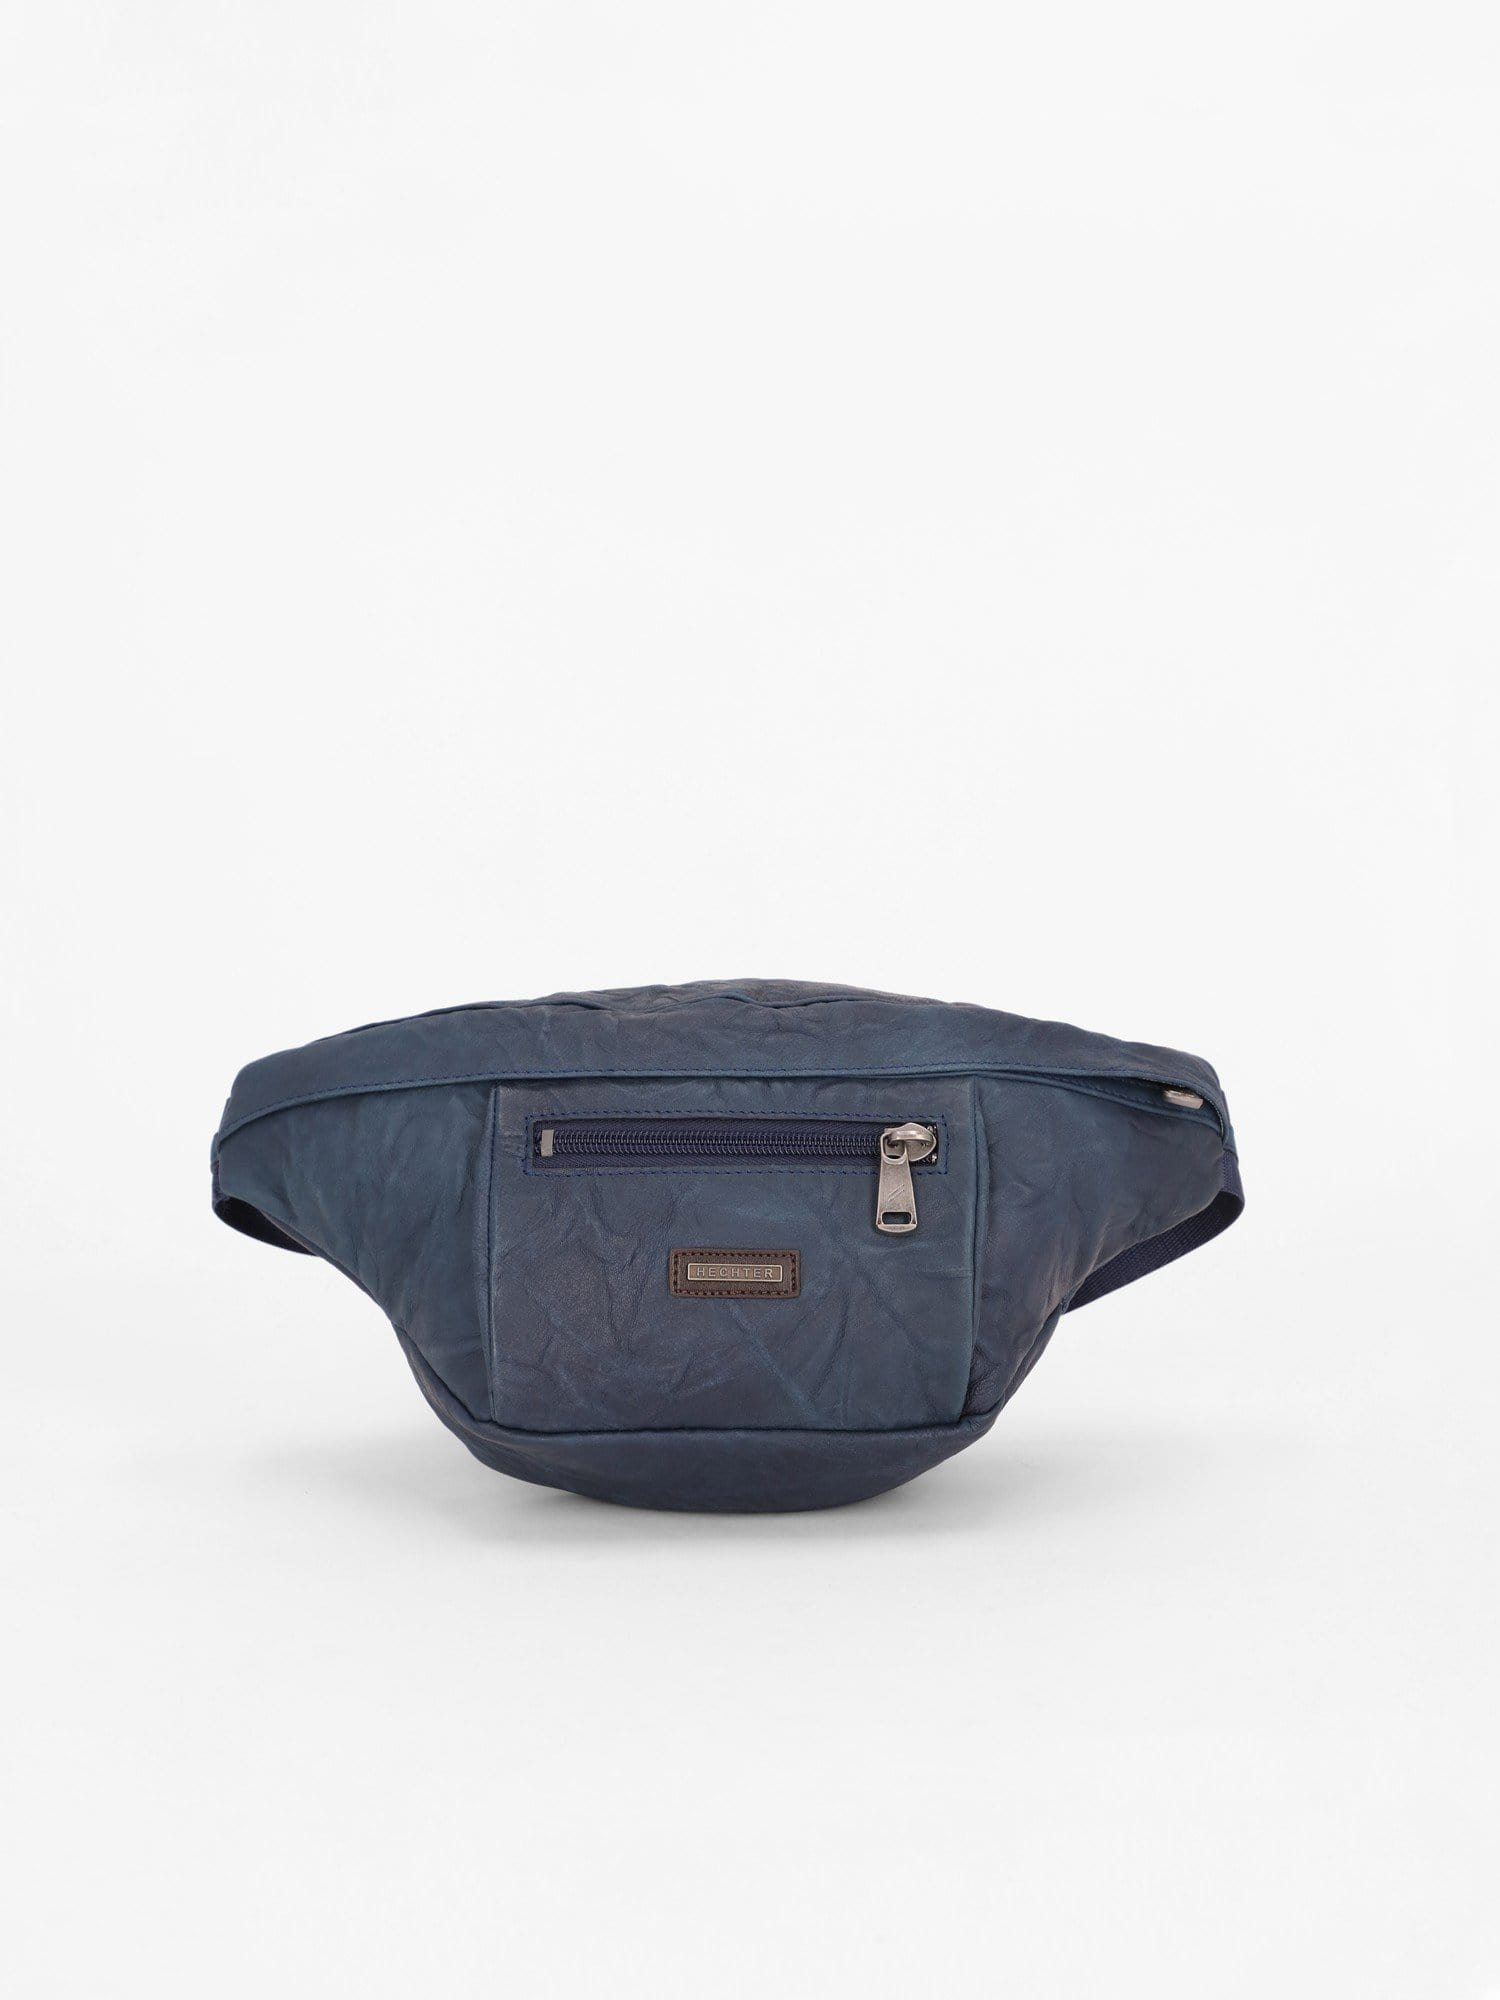 Daniel Hechter Other Accessories Navy / Os Leather Belt Bag with Washed Effect